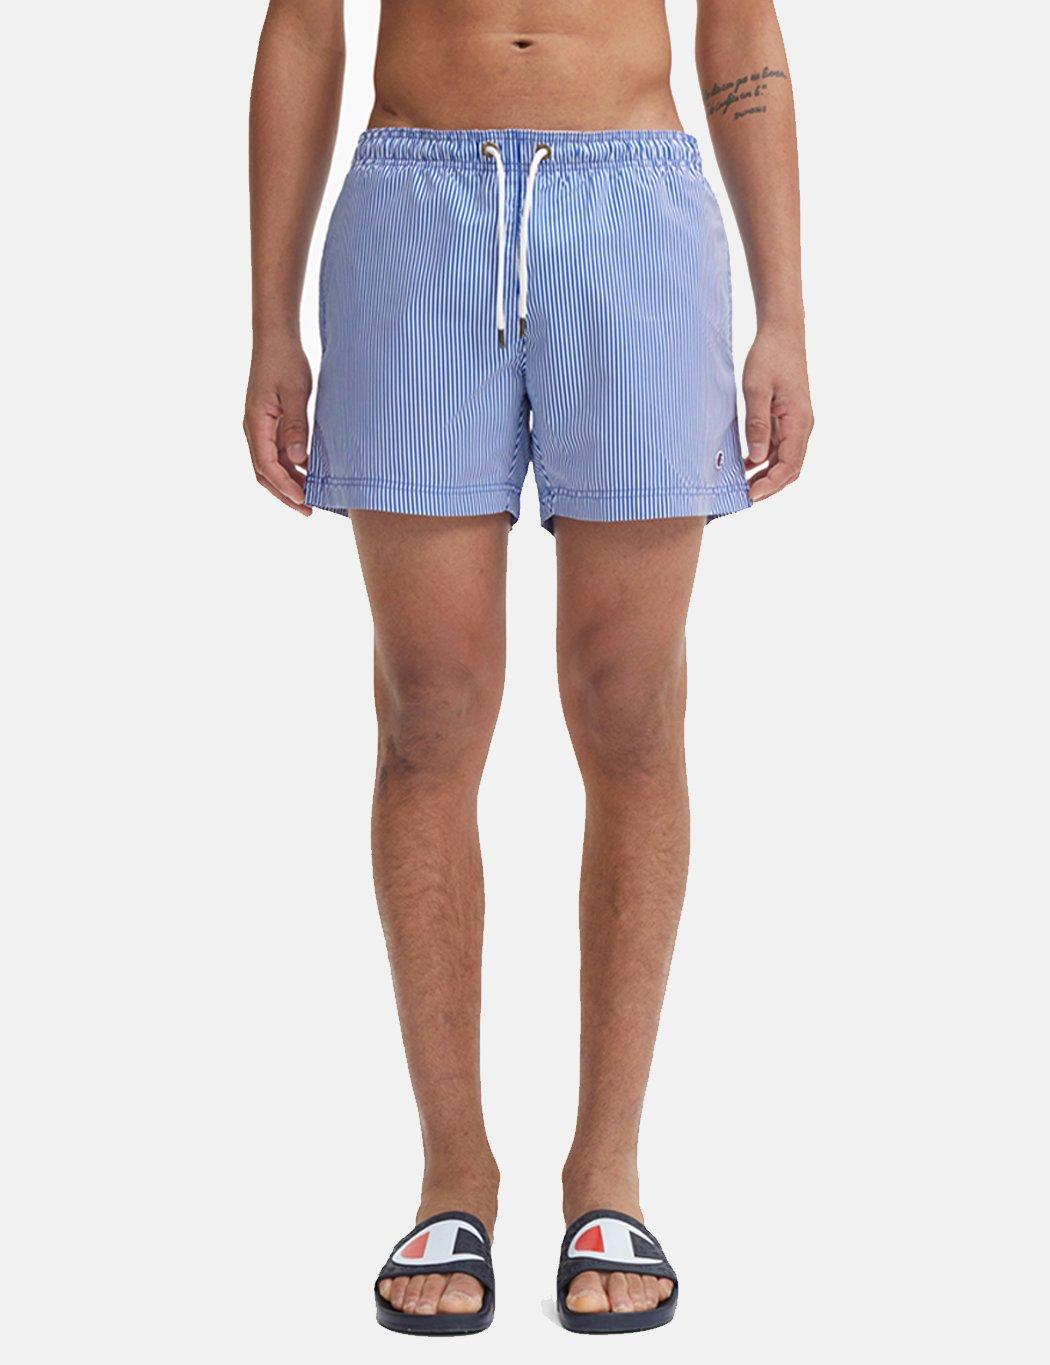 82e94c89c7 Lyst - Champion Beach Shorts in Blue for Men